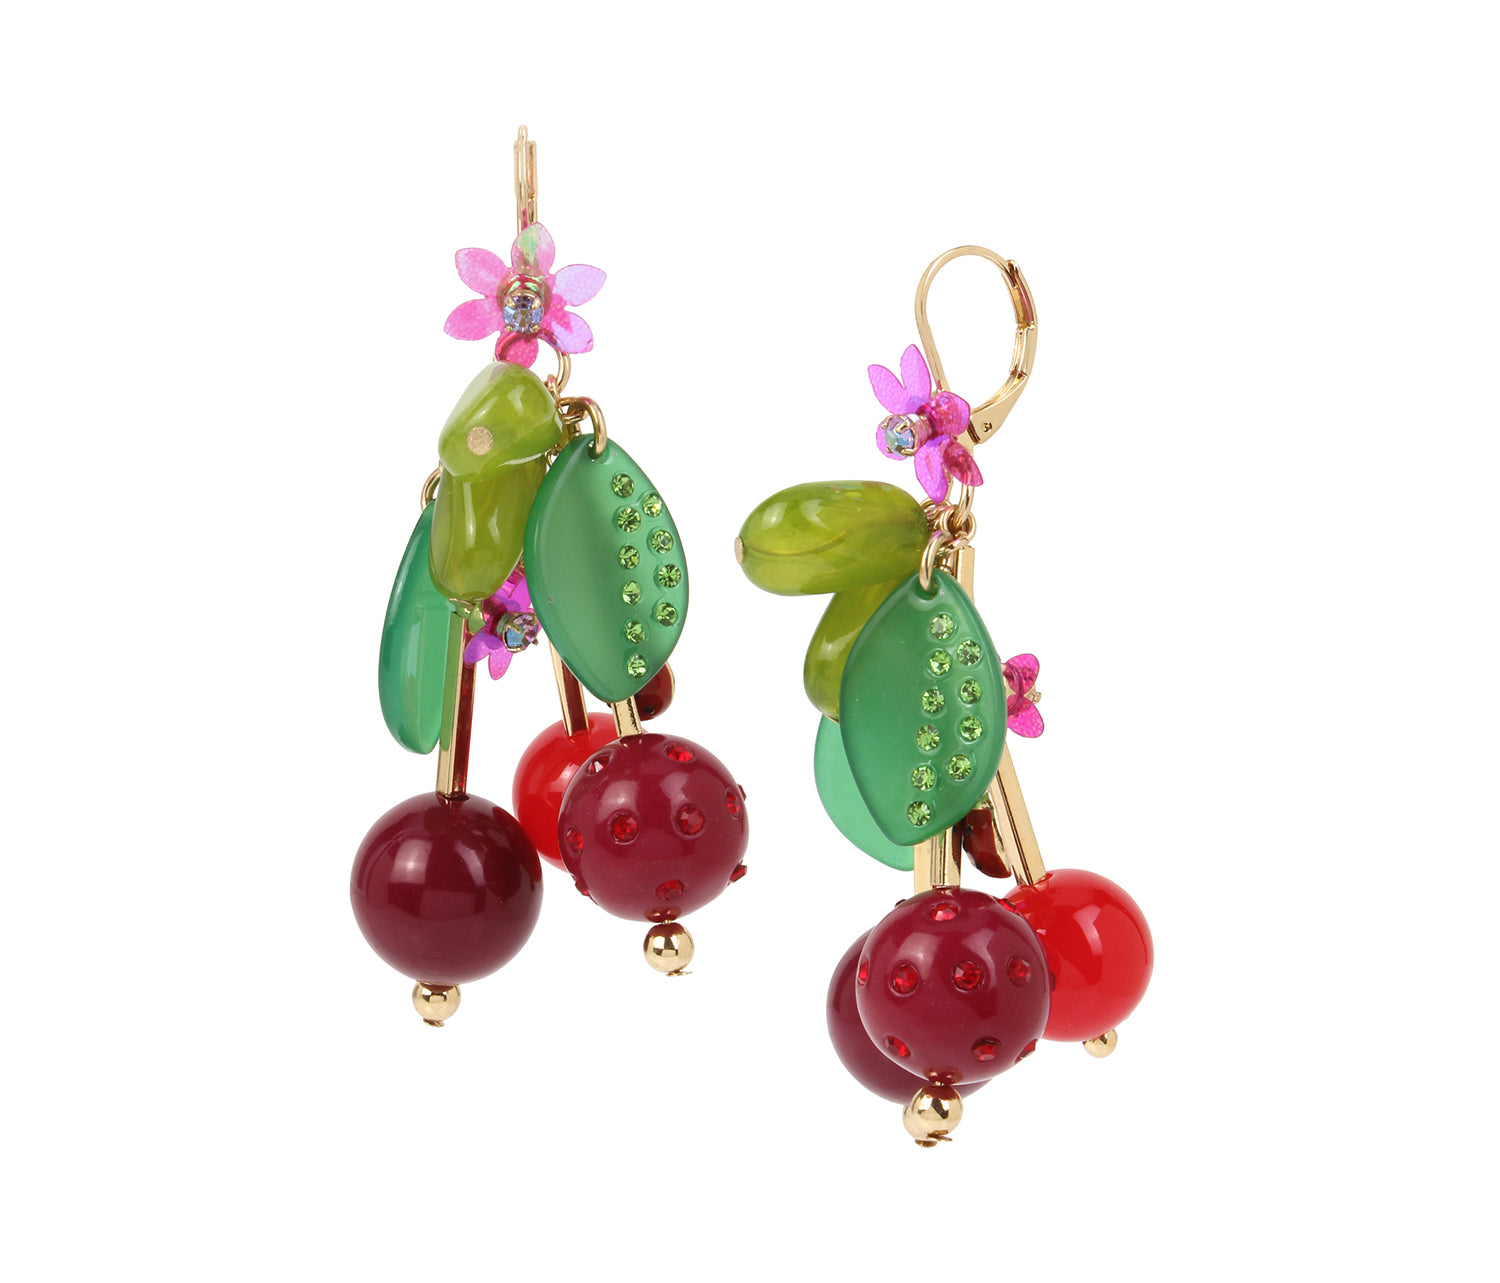 7f6ebb1c8a7a27 SUMMER PICNIC CHERRY DROP EARRINGS RED - JEWELRY - Betsey Johnson ...